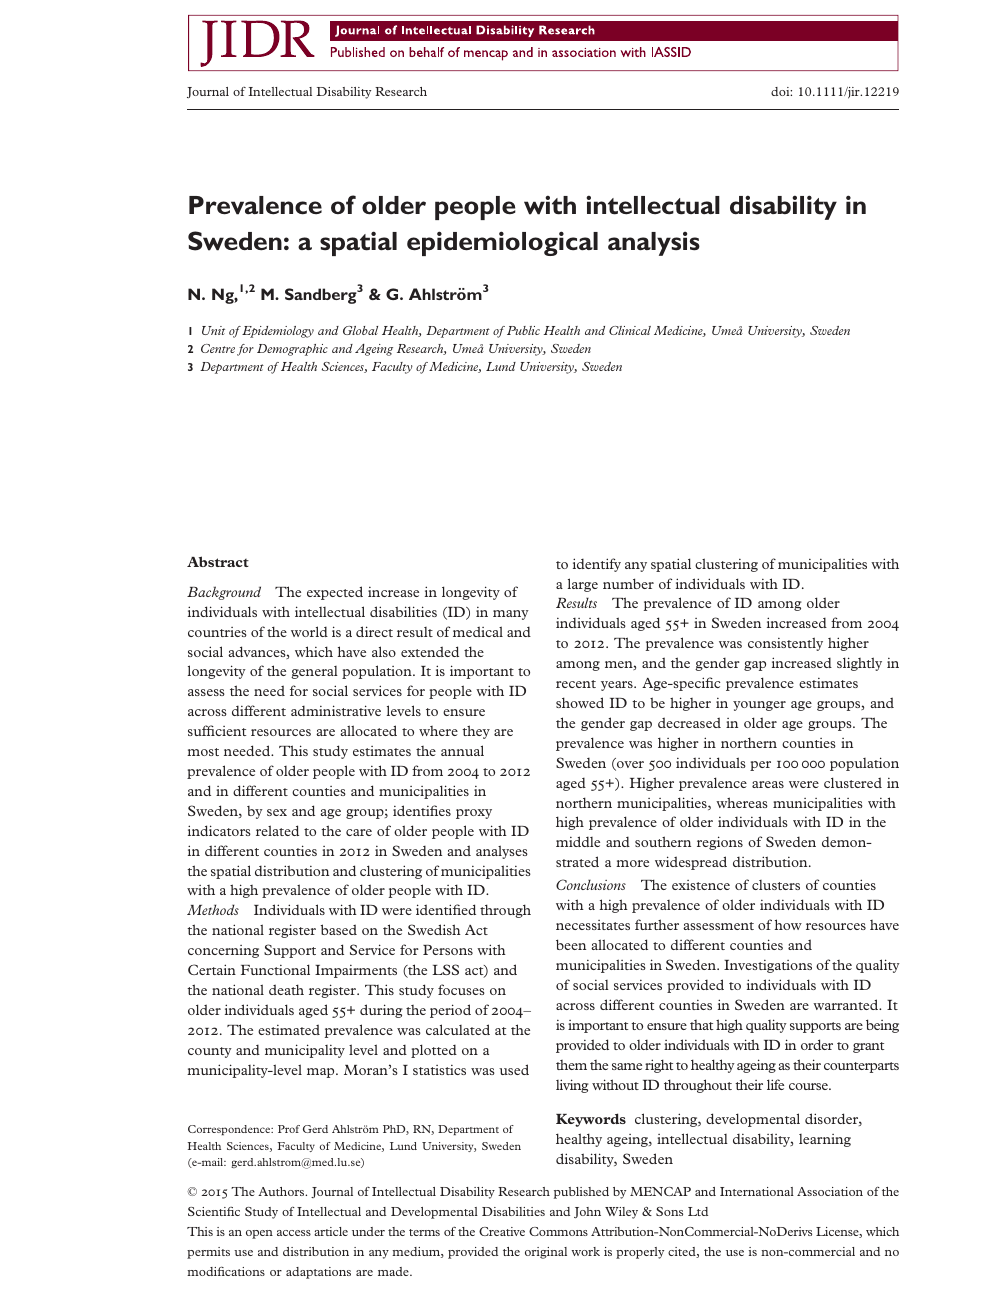 Prevalence of older people with intellectual disability in